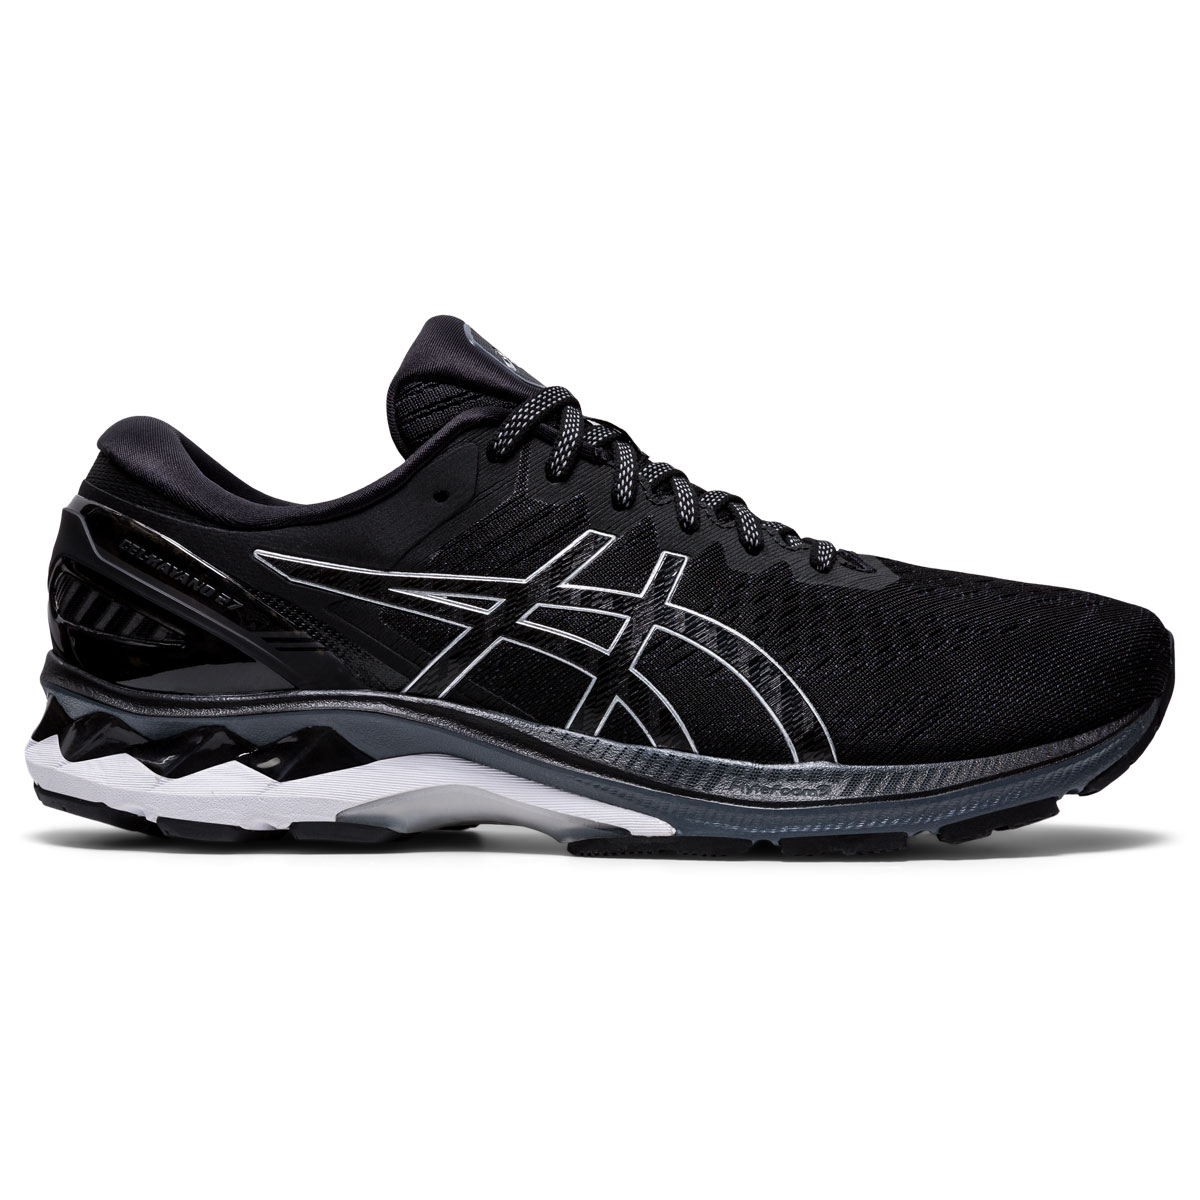 Men's Asics GEL-Kayano 27 Running Shoe - Color: Black/Pure Silv (Regular Width) - Size: 6, Black/Pure Silver, large, image 1